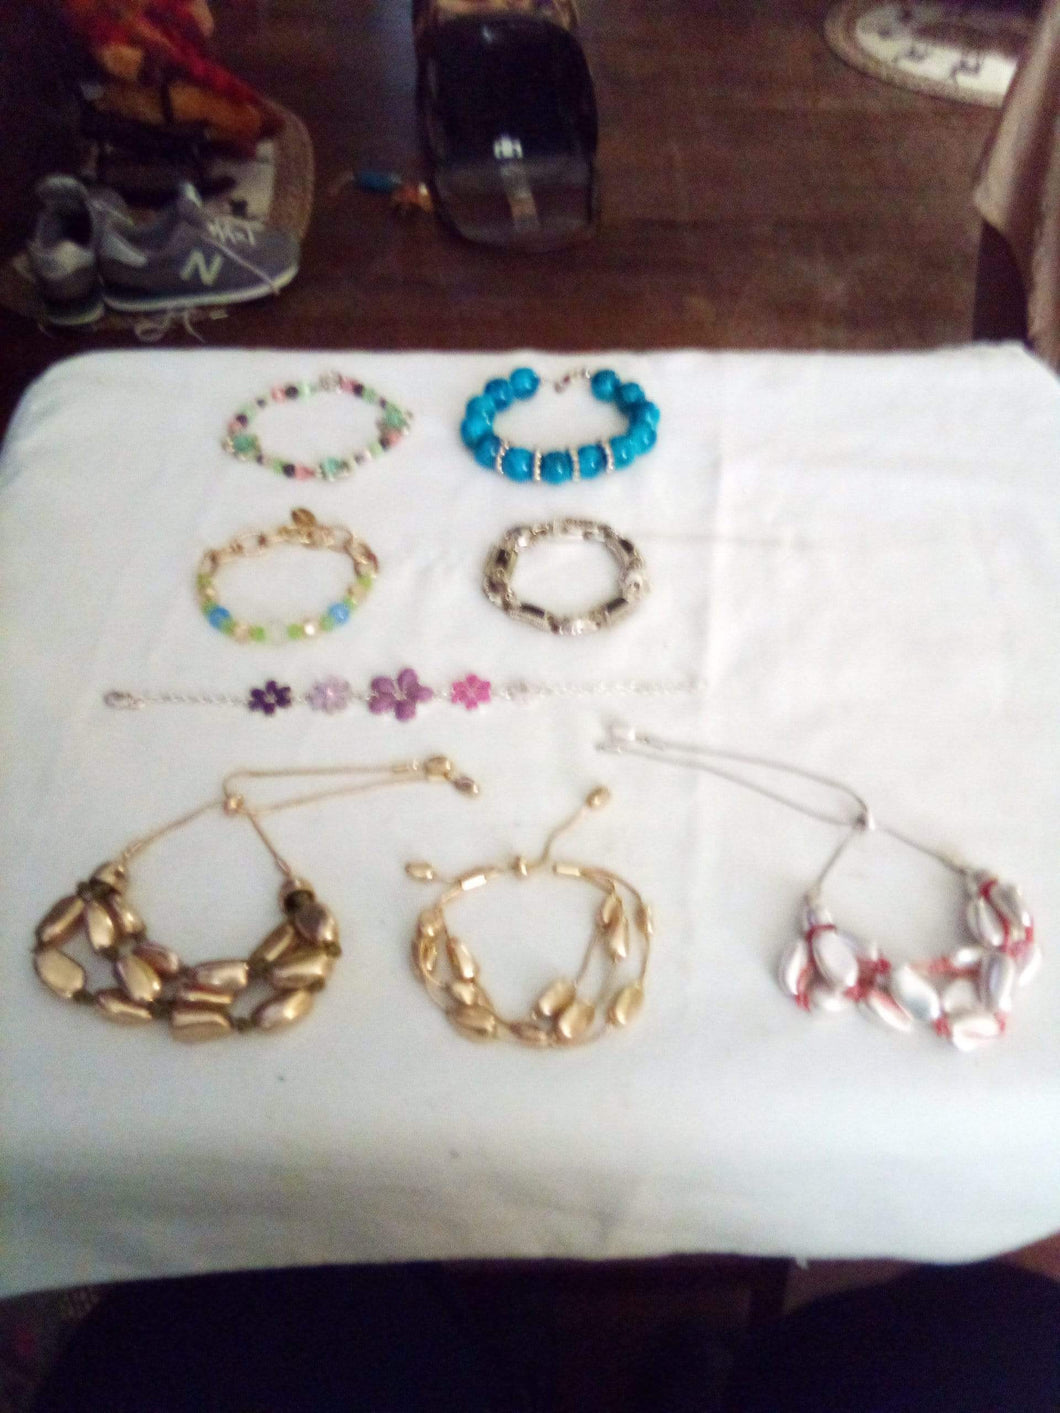 Vintage and dressy bracelet lot - B&P'sringsnthings